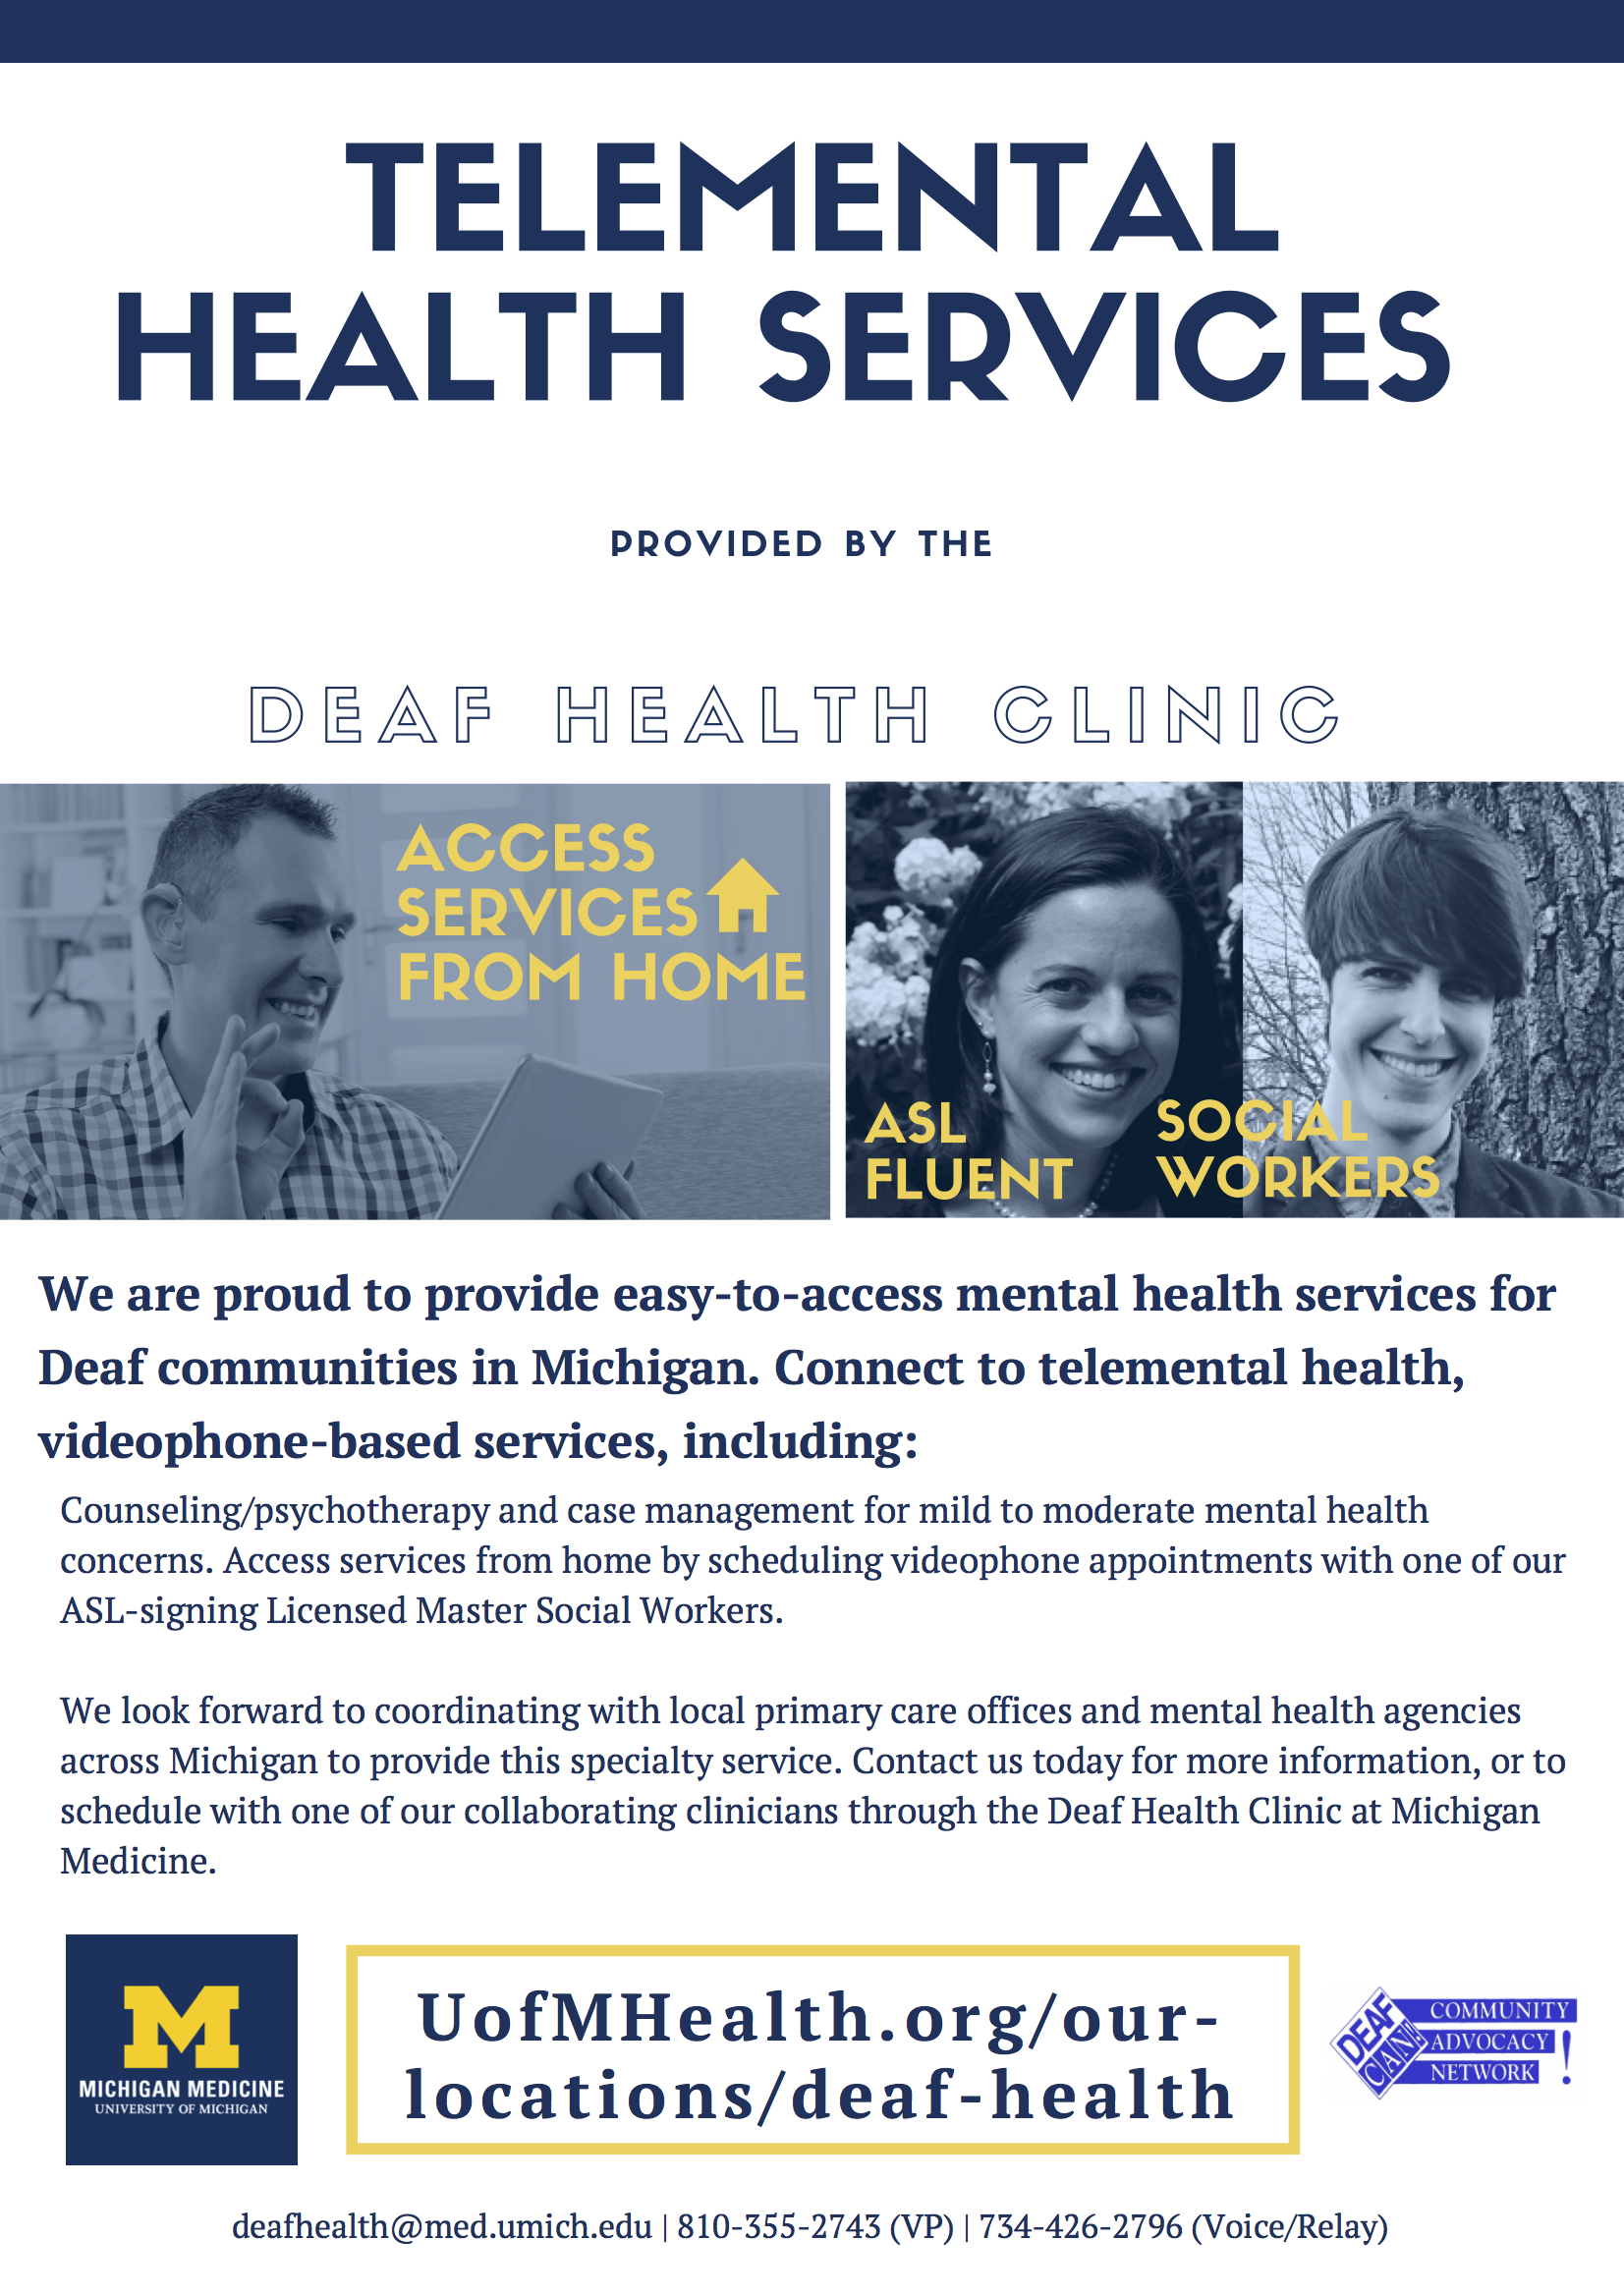 telemental health services poster for more information go to the deaf health center website